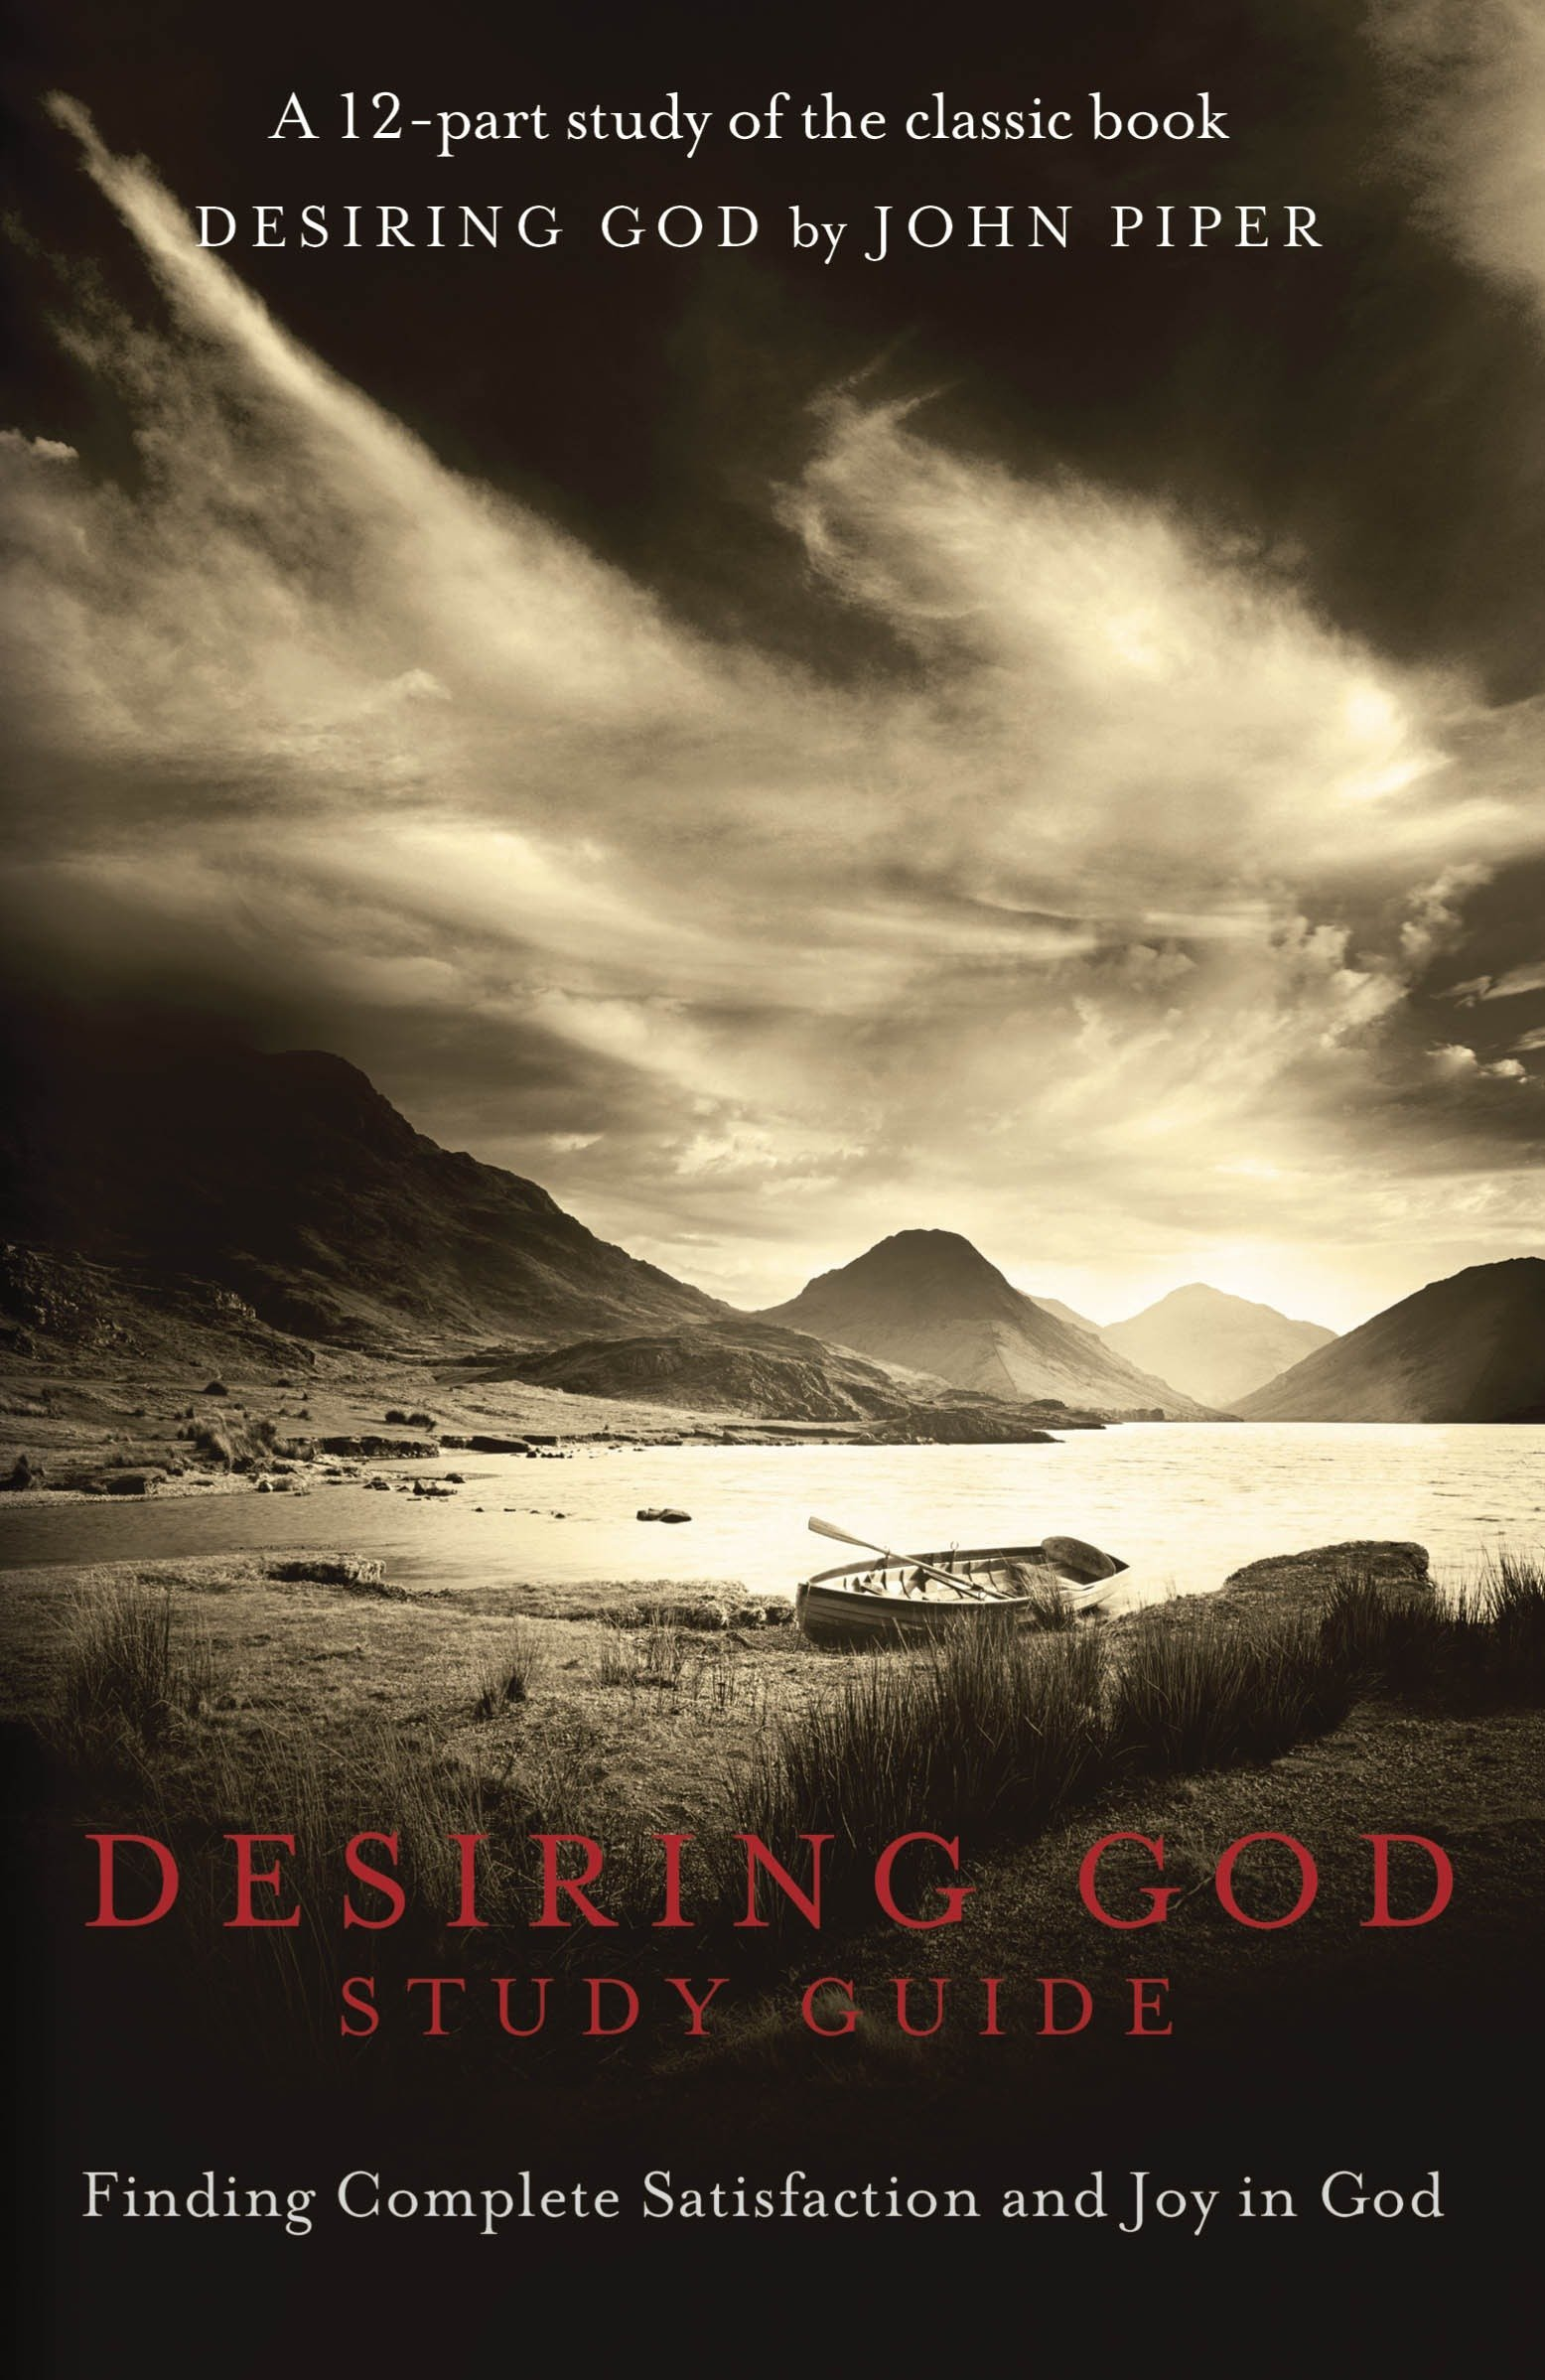 Desiring God Study Guide: Finding Complete